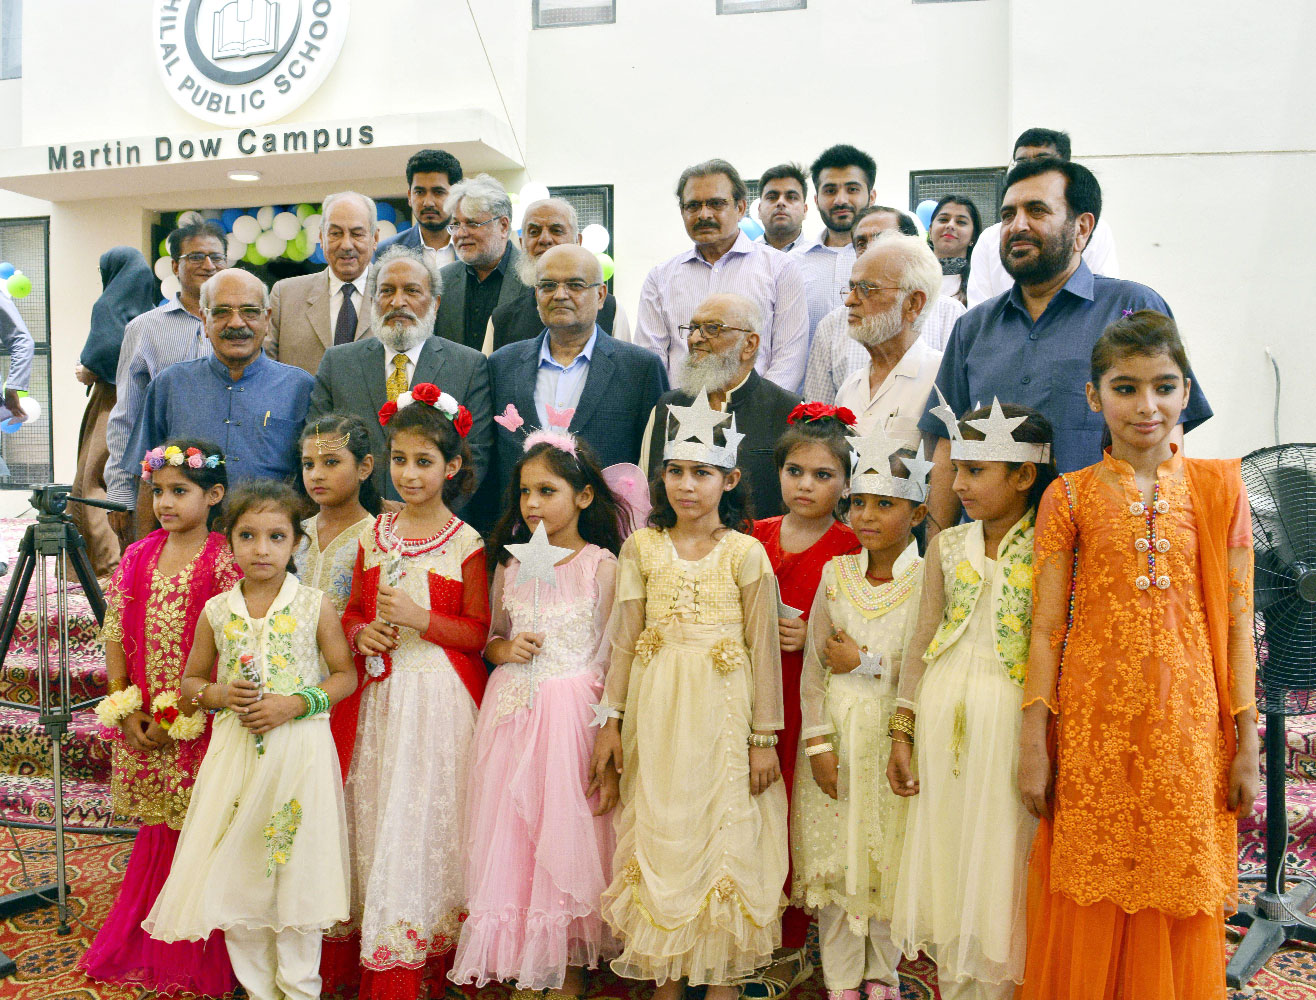 Hilal School, Martin Dow Campus opens